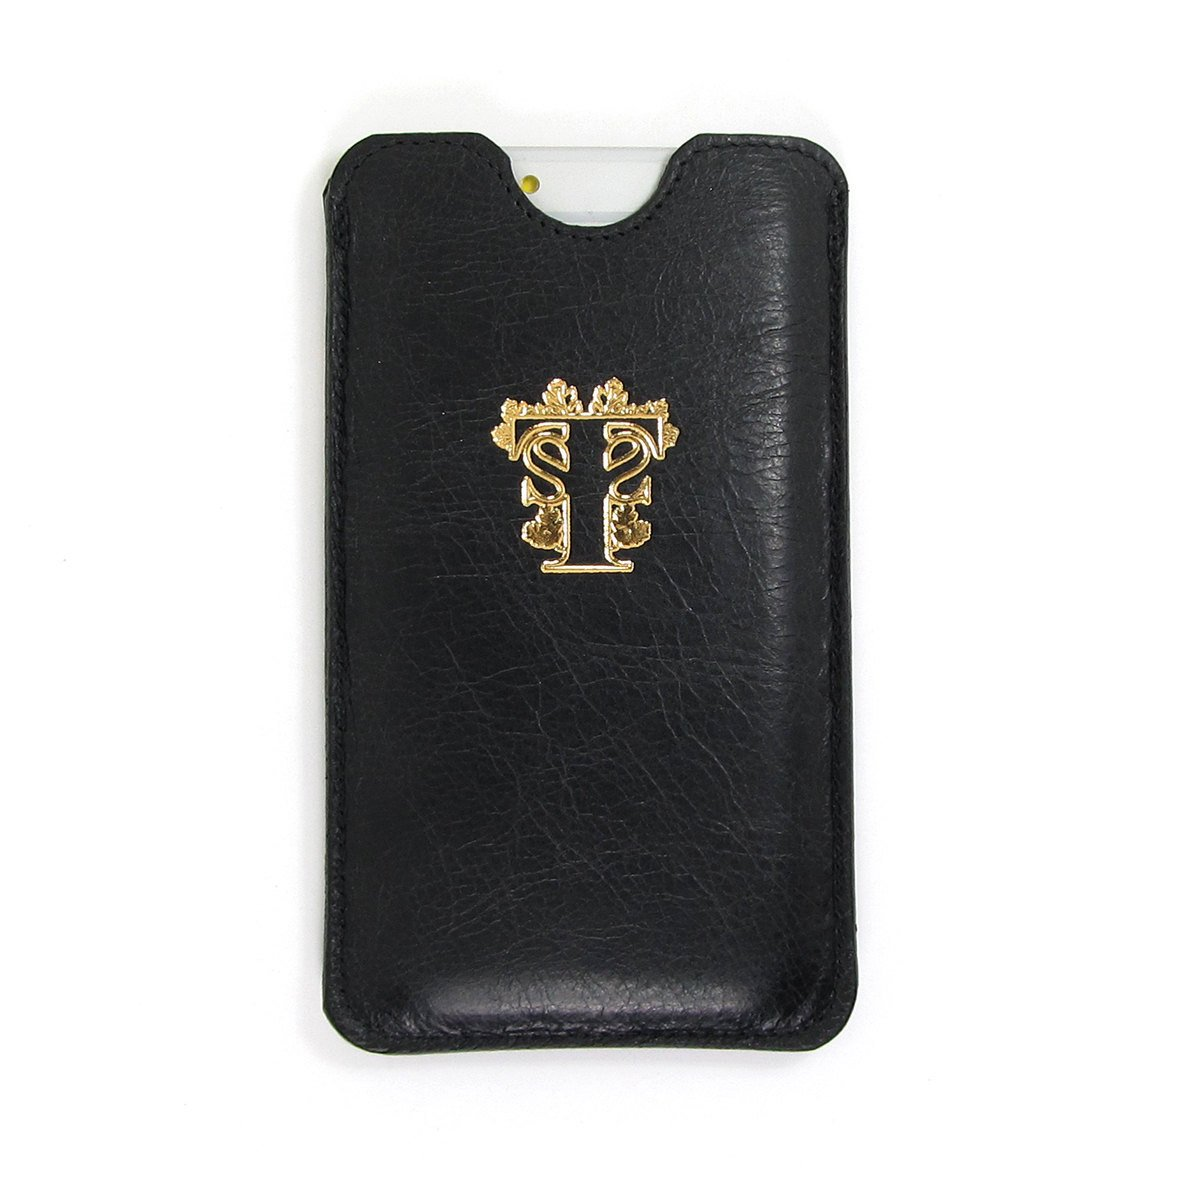 Leather Phone Case - A Dutch Spring - Tovi Sorga  - 2